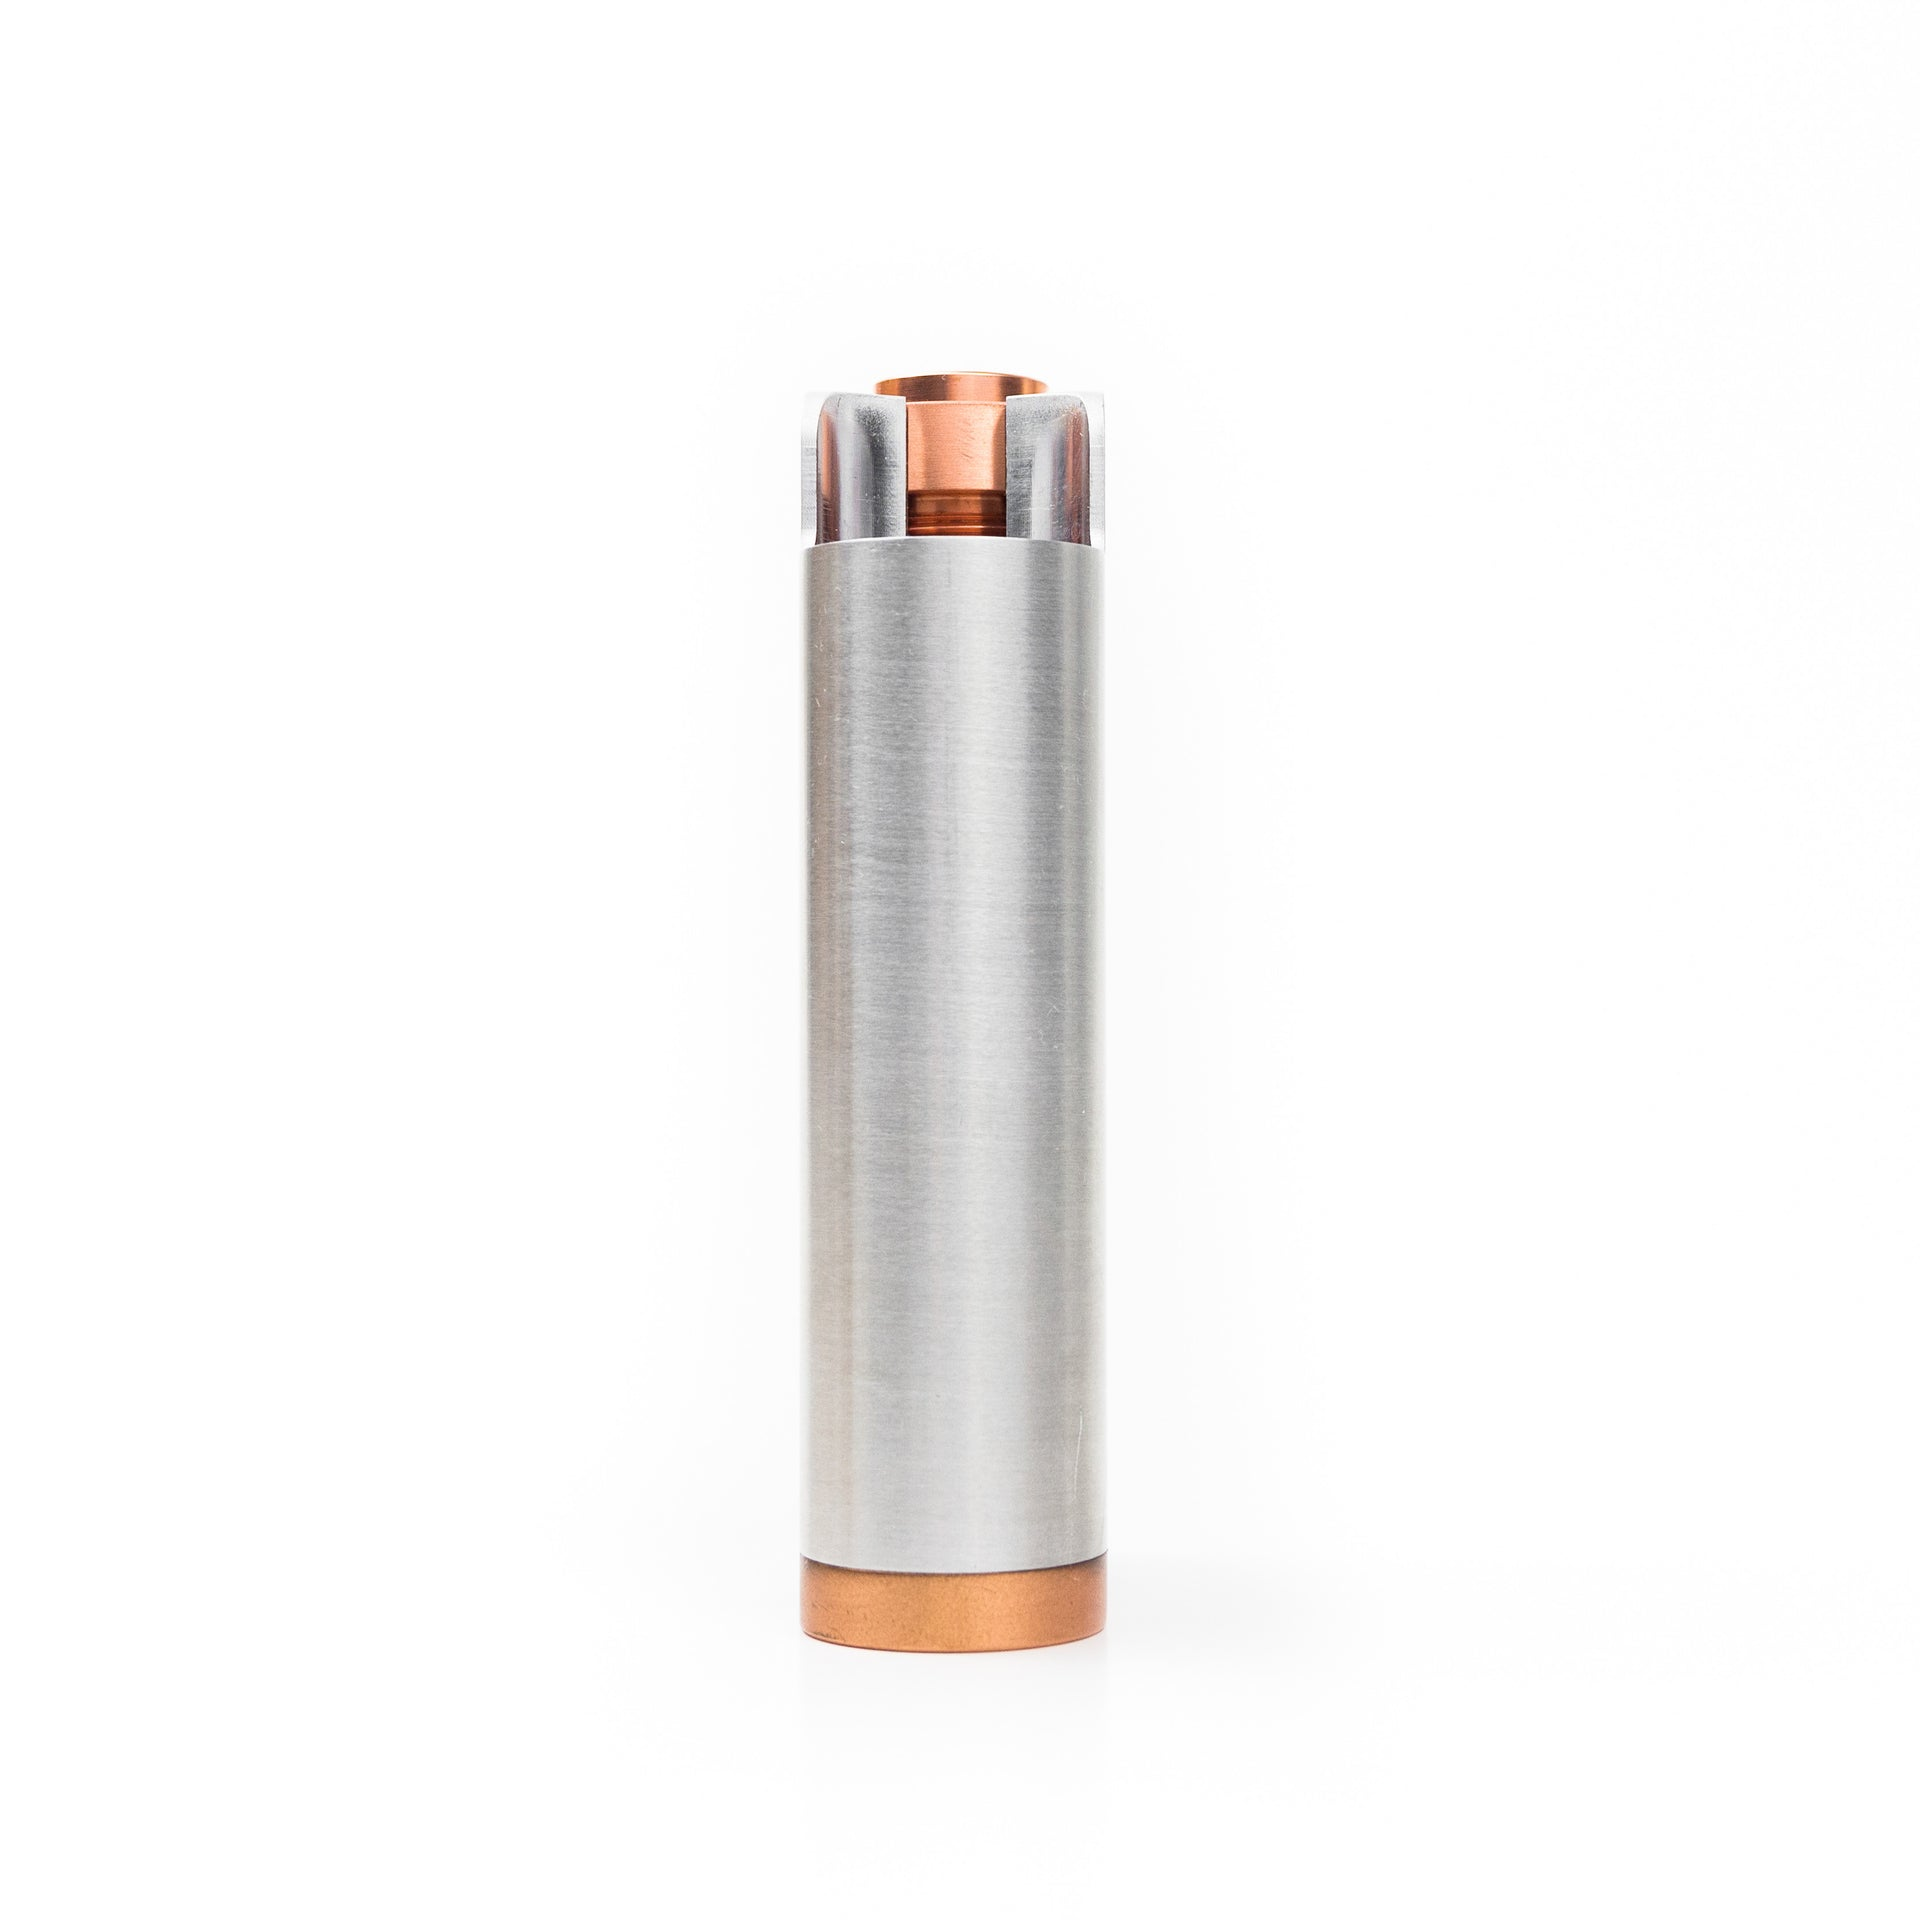 Goodfella Mechanical Box Mod